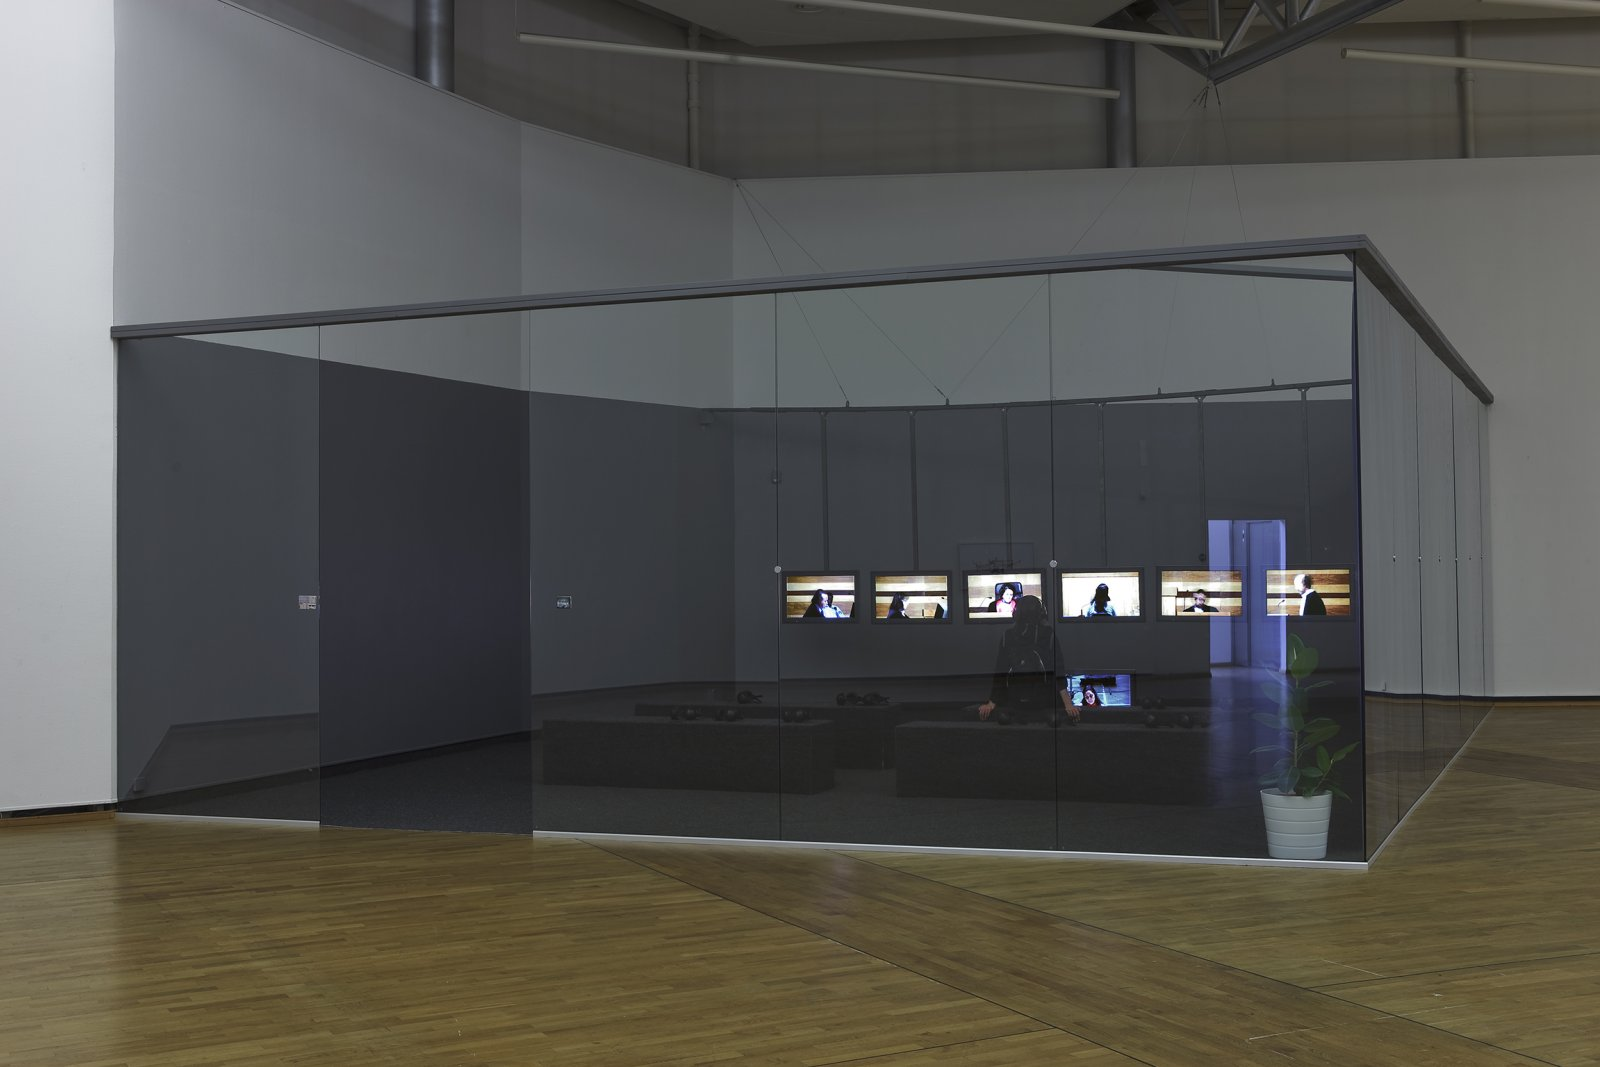 Judy Radul, World Rehearsal Court, 2009, mixed media, dimensions variable. Installation view, World Rehearsal Court, Henie Onstad Kunstsenter, Høvikodden, Norway, 2011 by Judy Radul